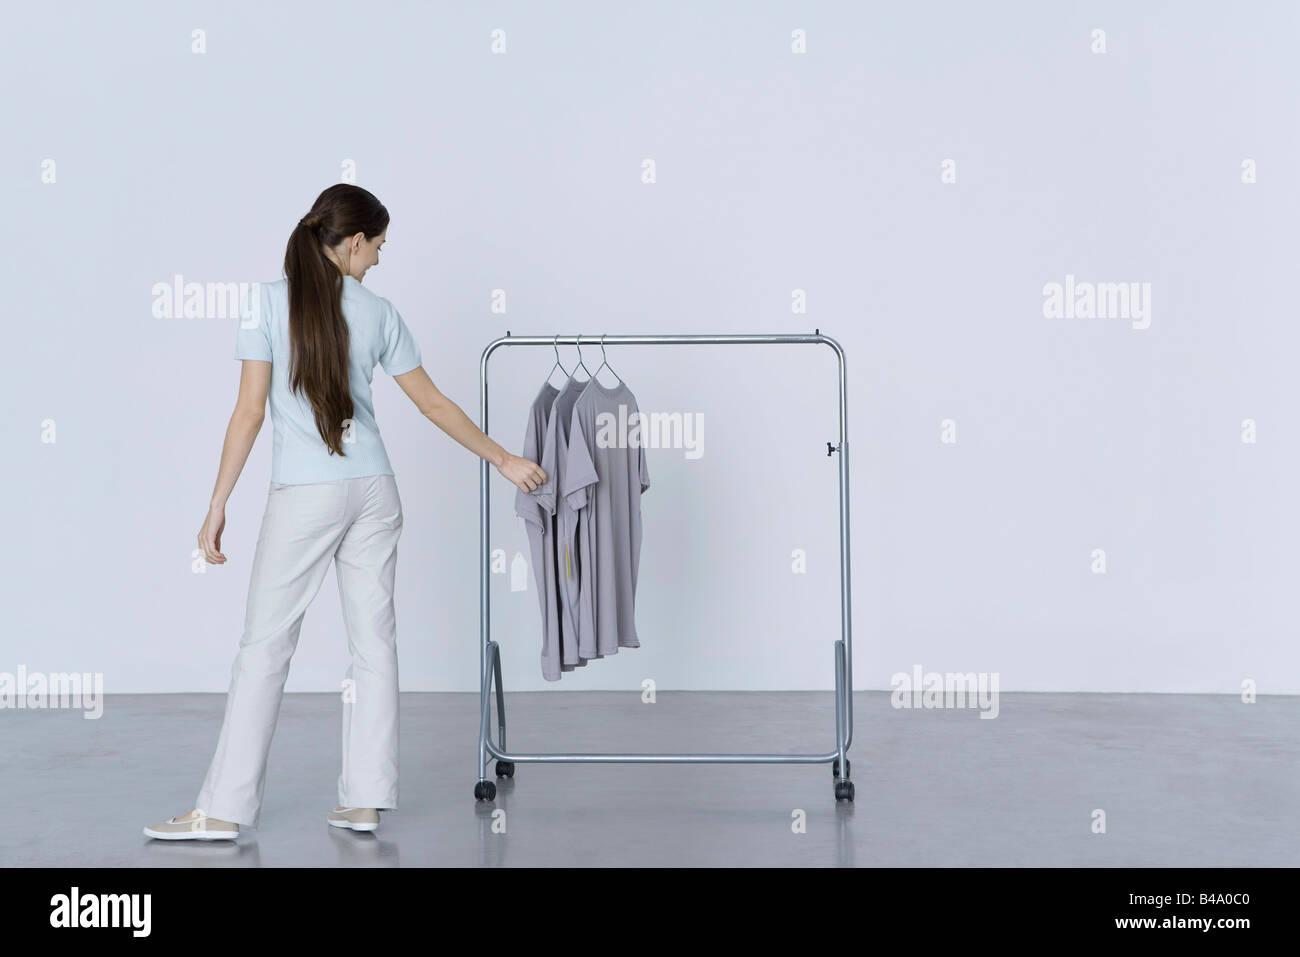 Woman looking at tee-shirts hanging on rack, rear view - Stock Image